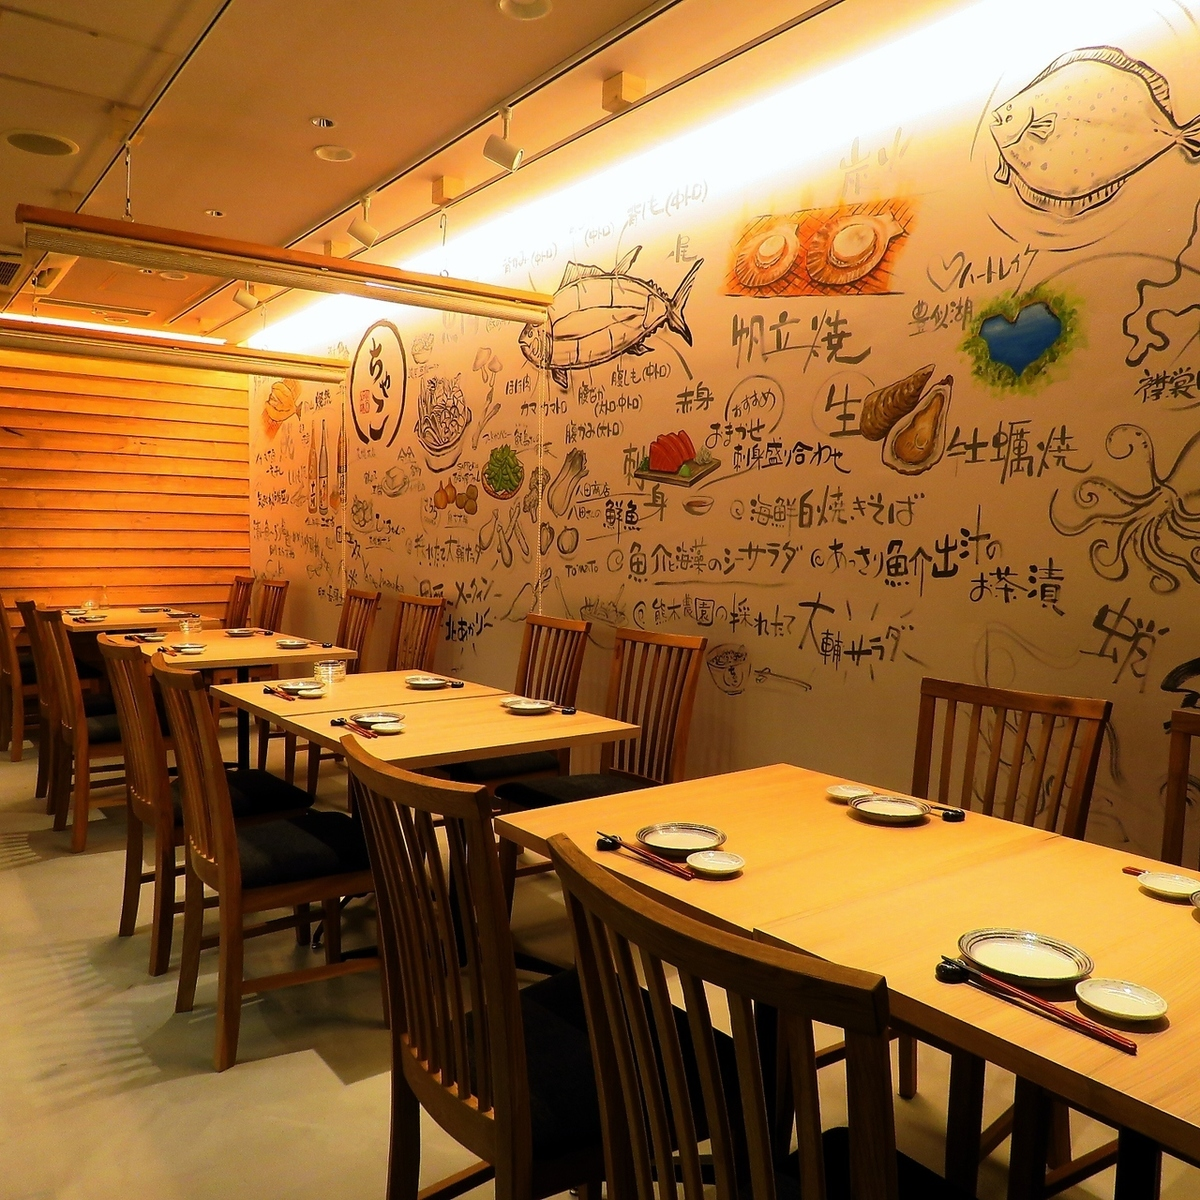 【Table seat prepared for 18 people】 4 people table × 4 table, 2 people table × 1 table The table seat prepared by the table is the point of attention of the designs drawn on the wall.Eat, drink and watch.Please enjoy our hospitality with our senses.